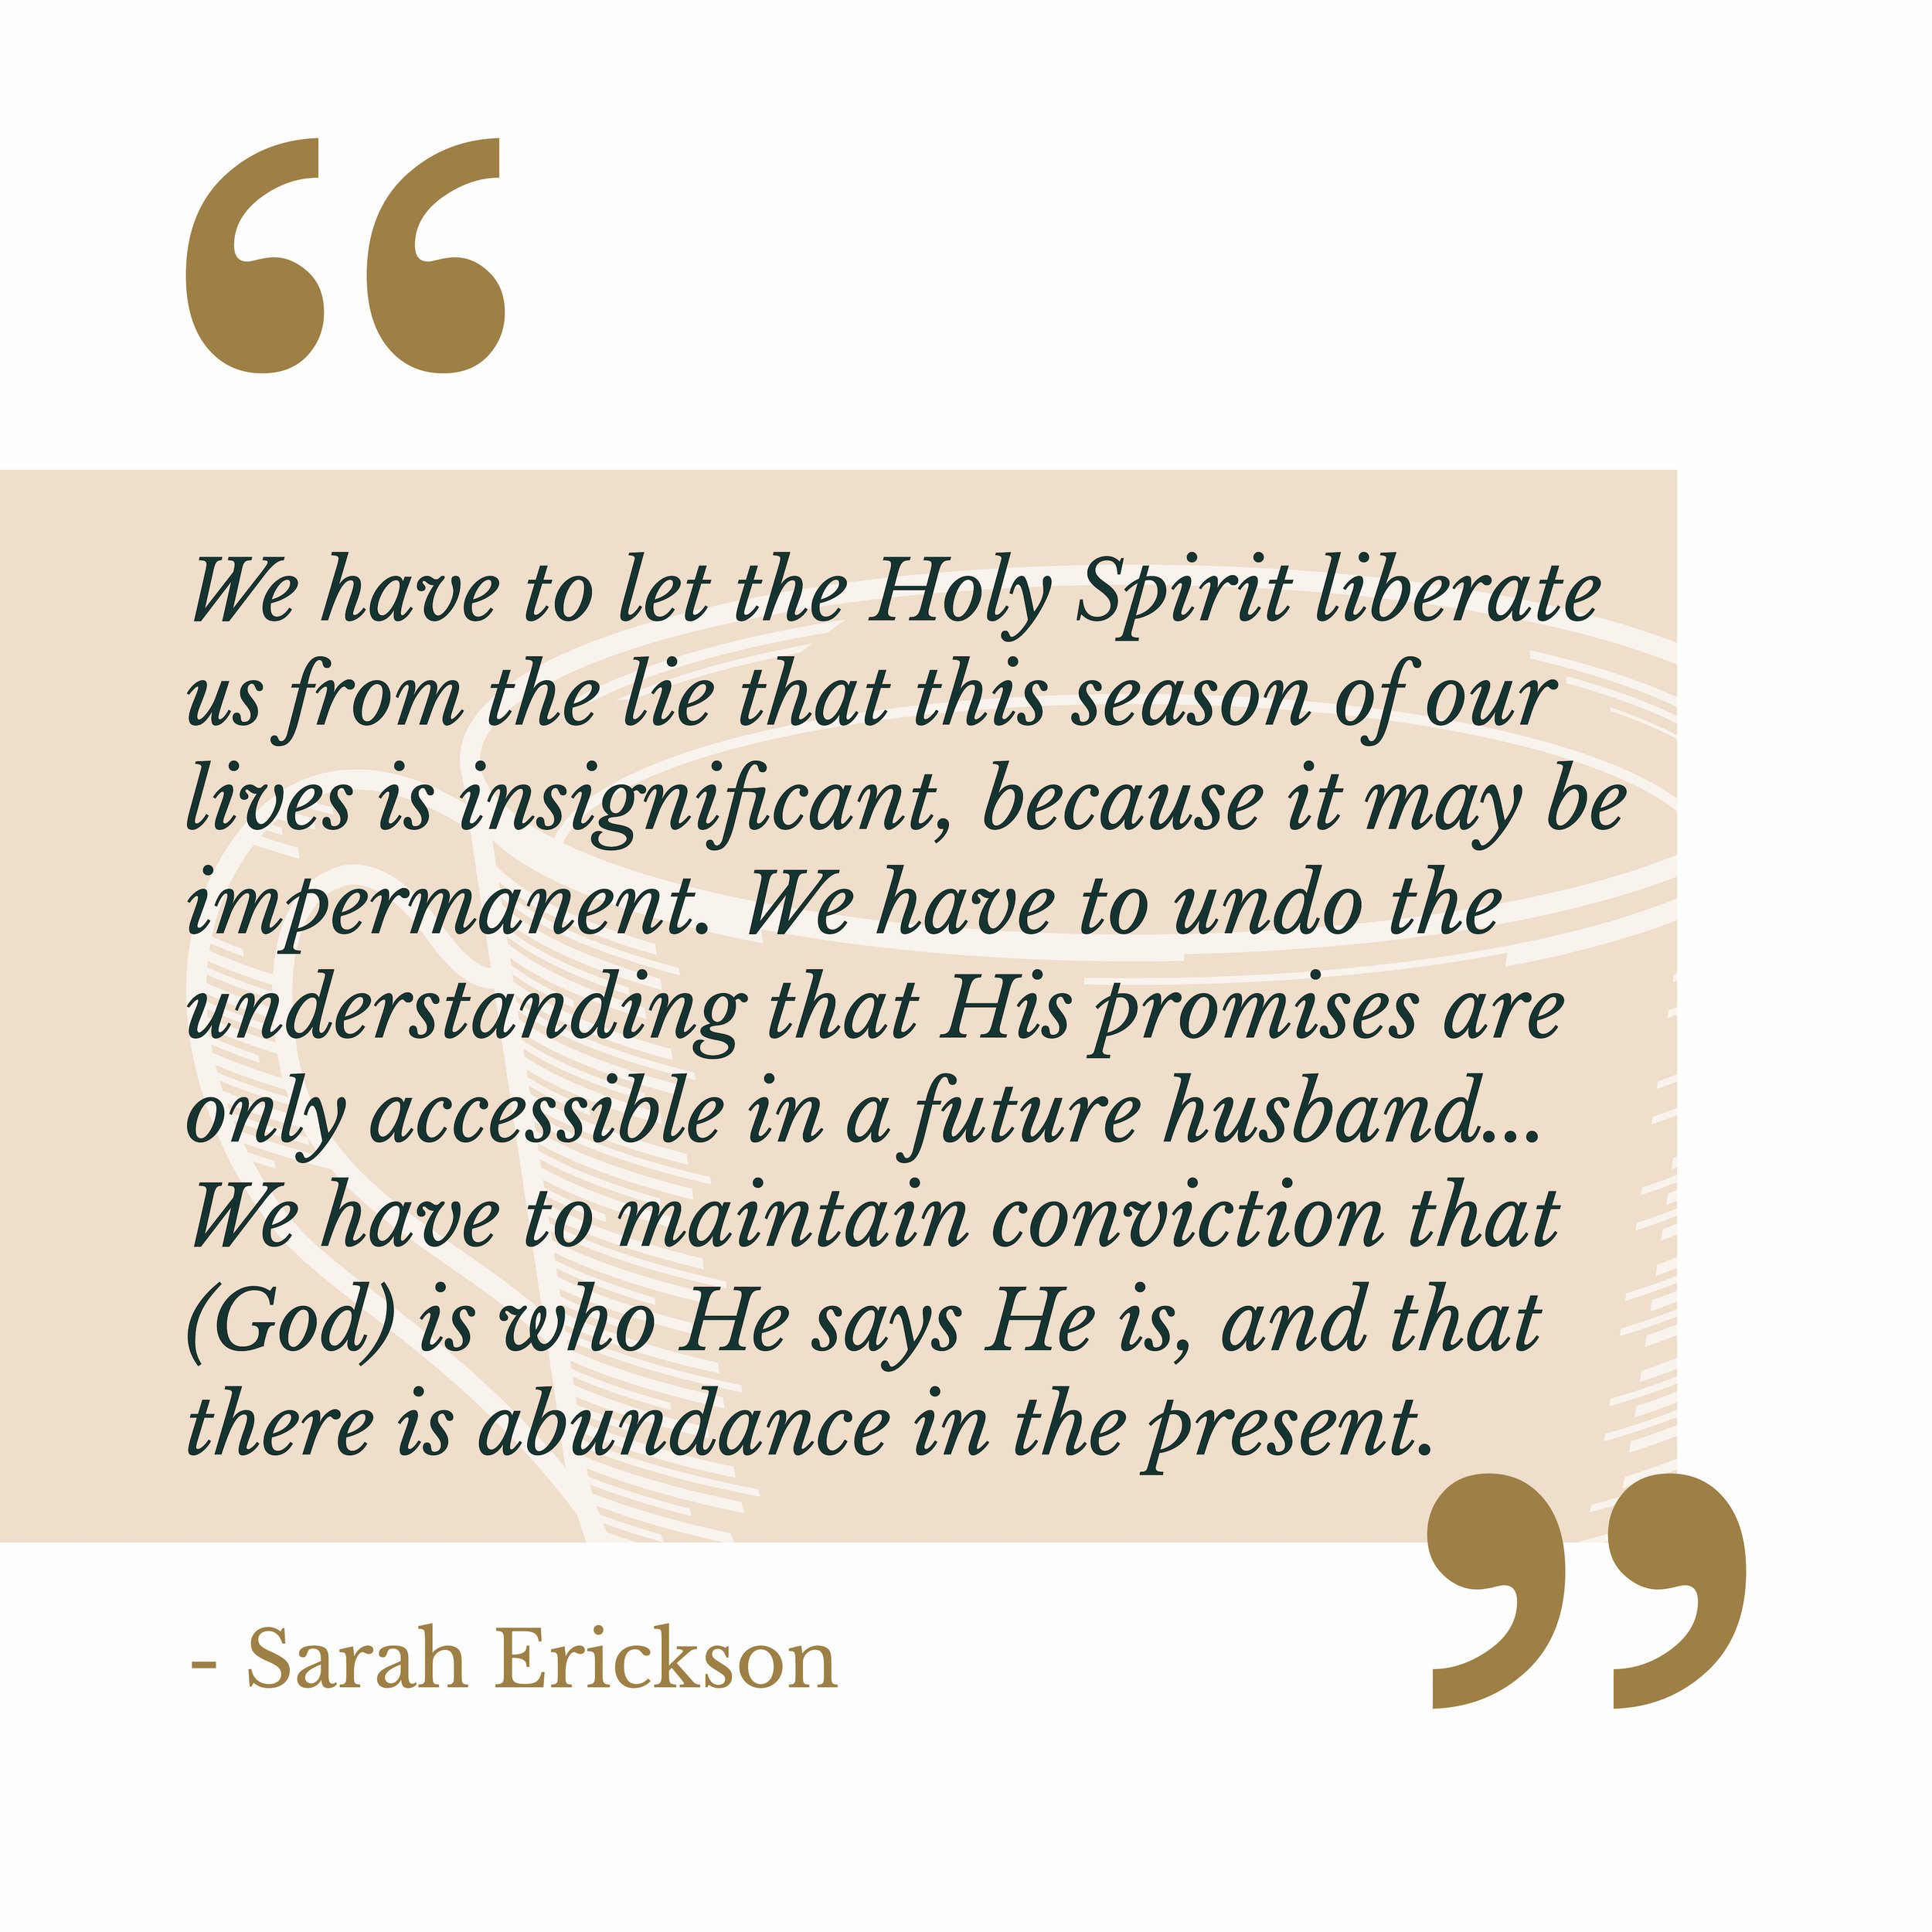 Sarah Erickson The Catholic Woman Quote